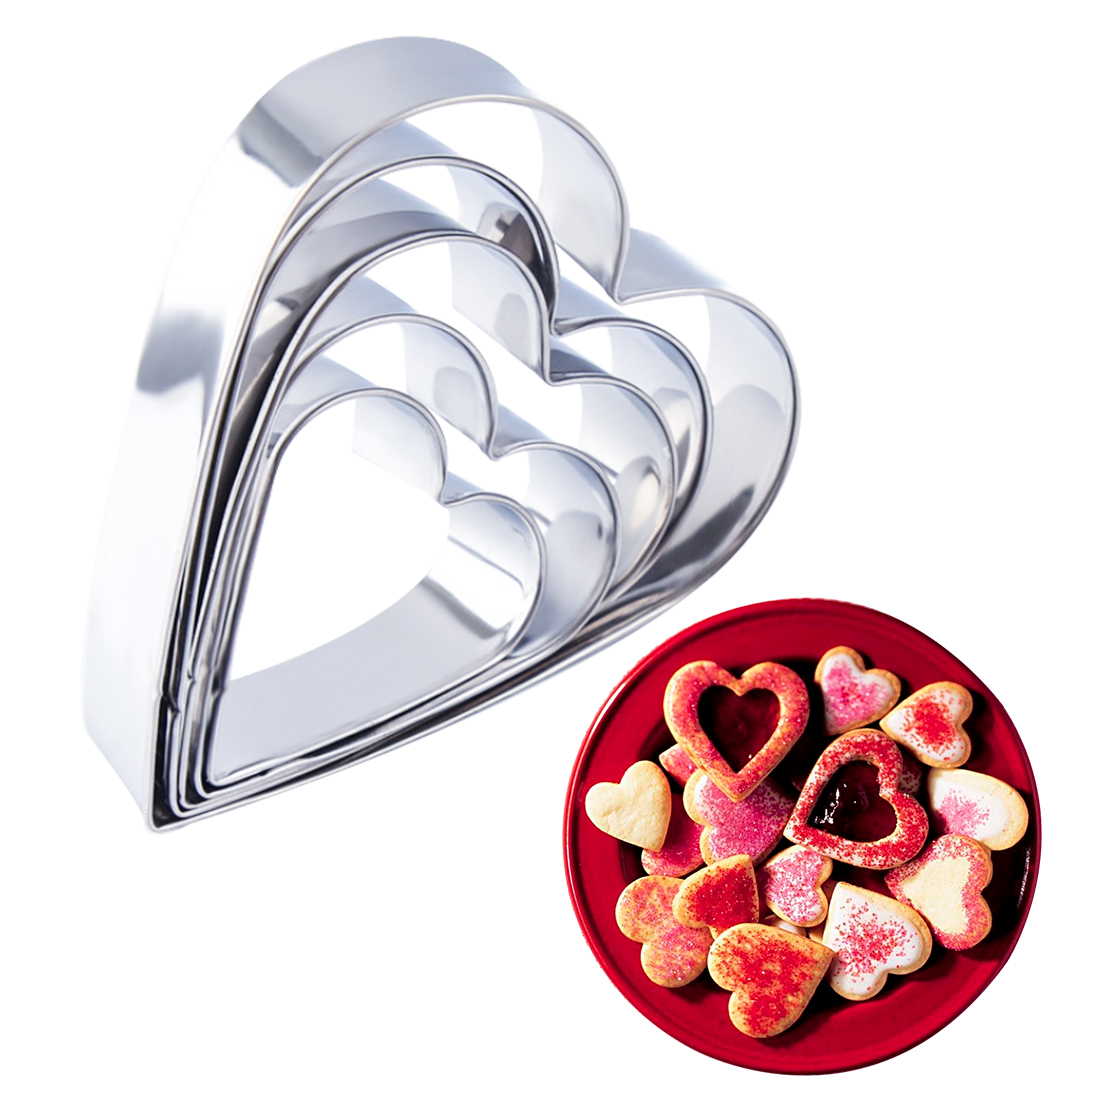 Adroit 5pcs/set Baking Moulds Stainless Steel Heart Shaped Cookies Cutters Cake Fondant Cookie Cutters Cake Pastry Decorating Tools Buy One Give One Home & Garden